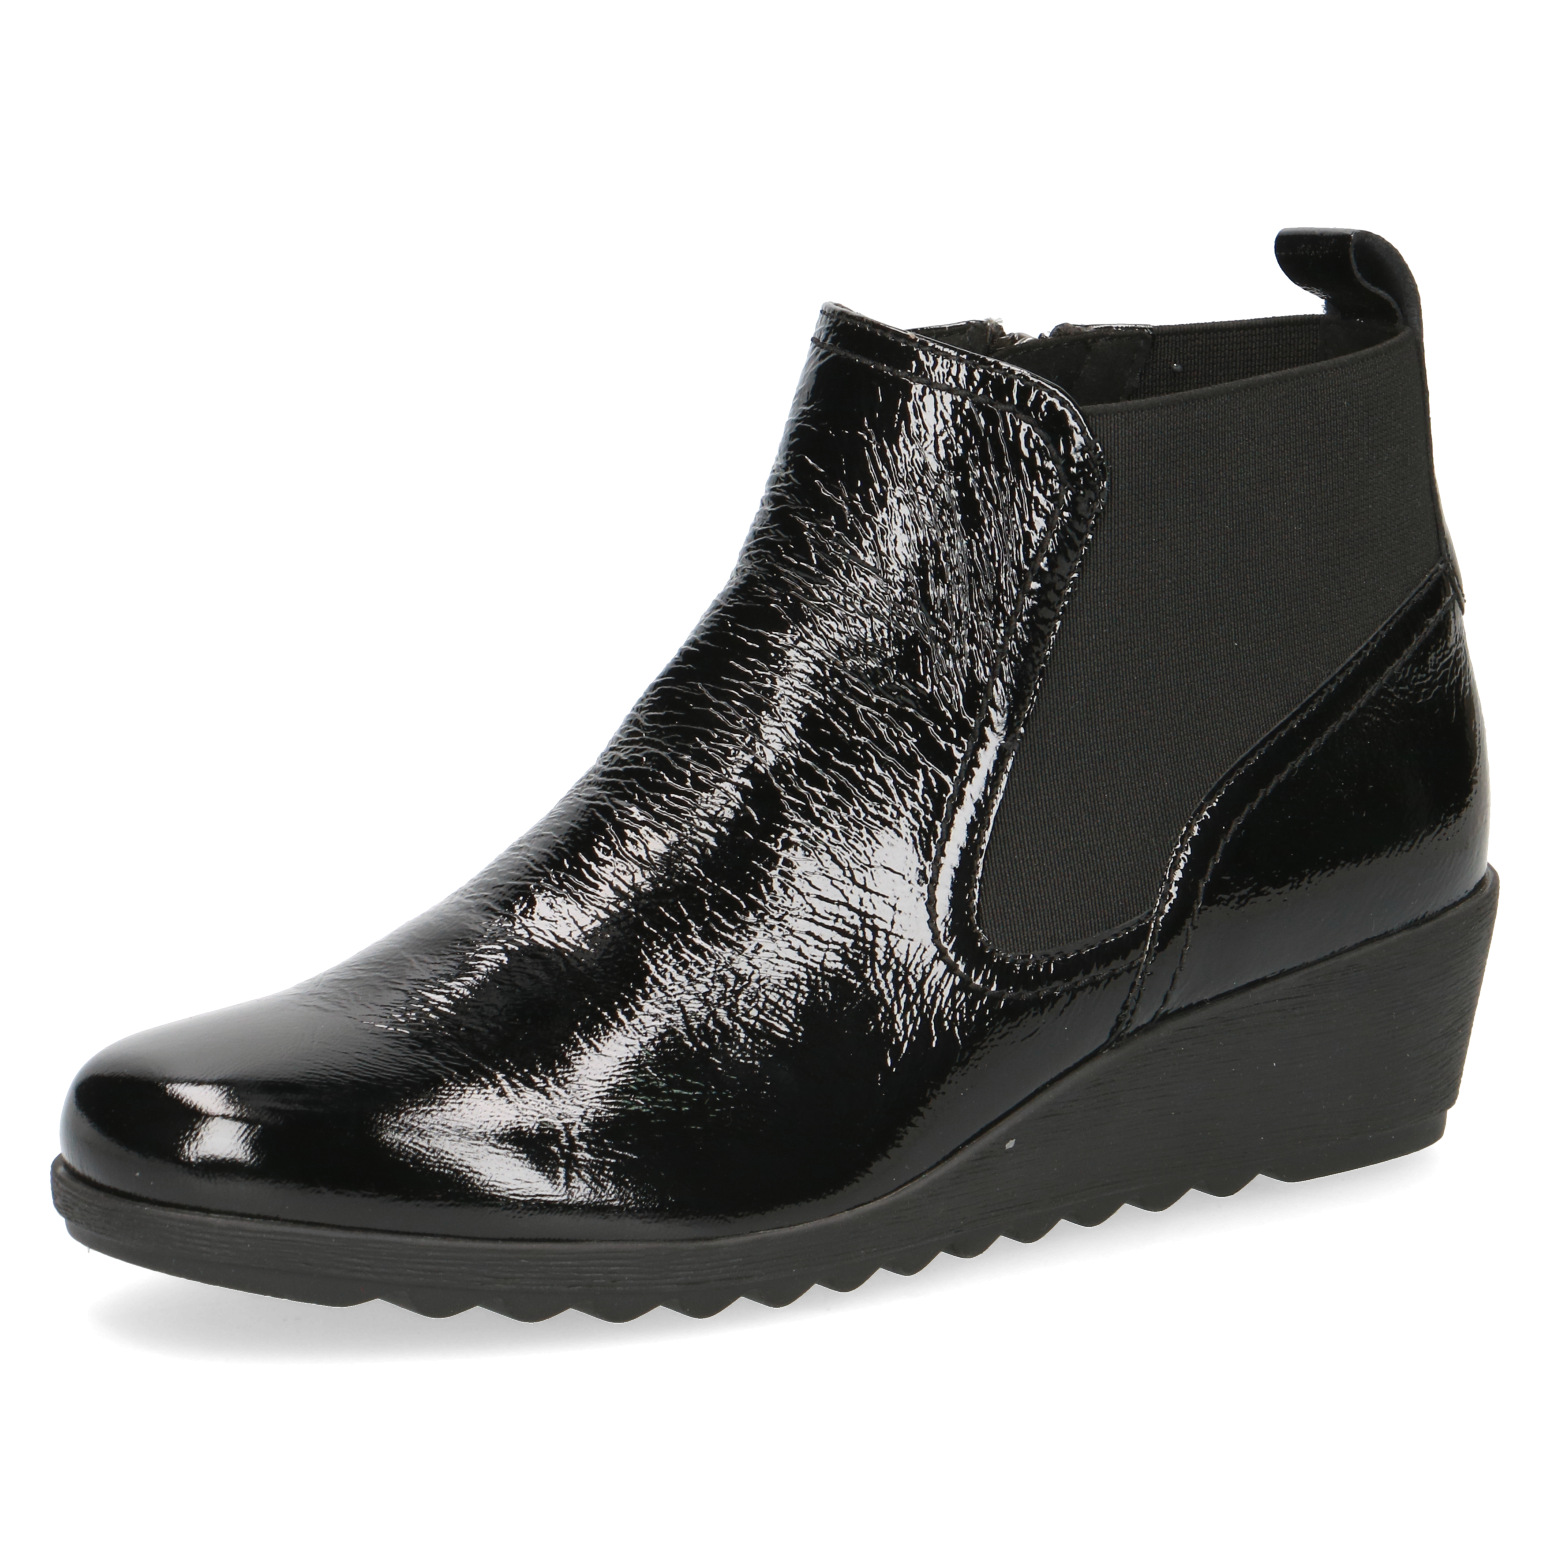 Caprice Iona Black Crackle Patent Leather Boot